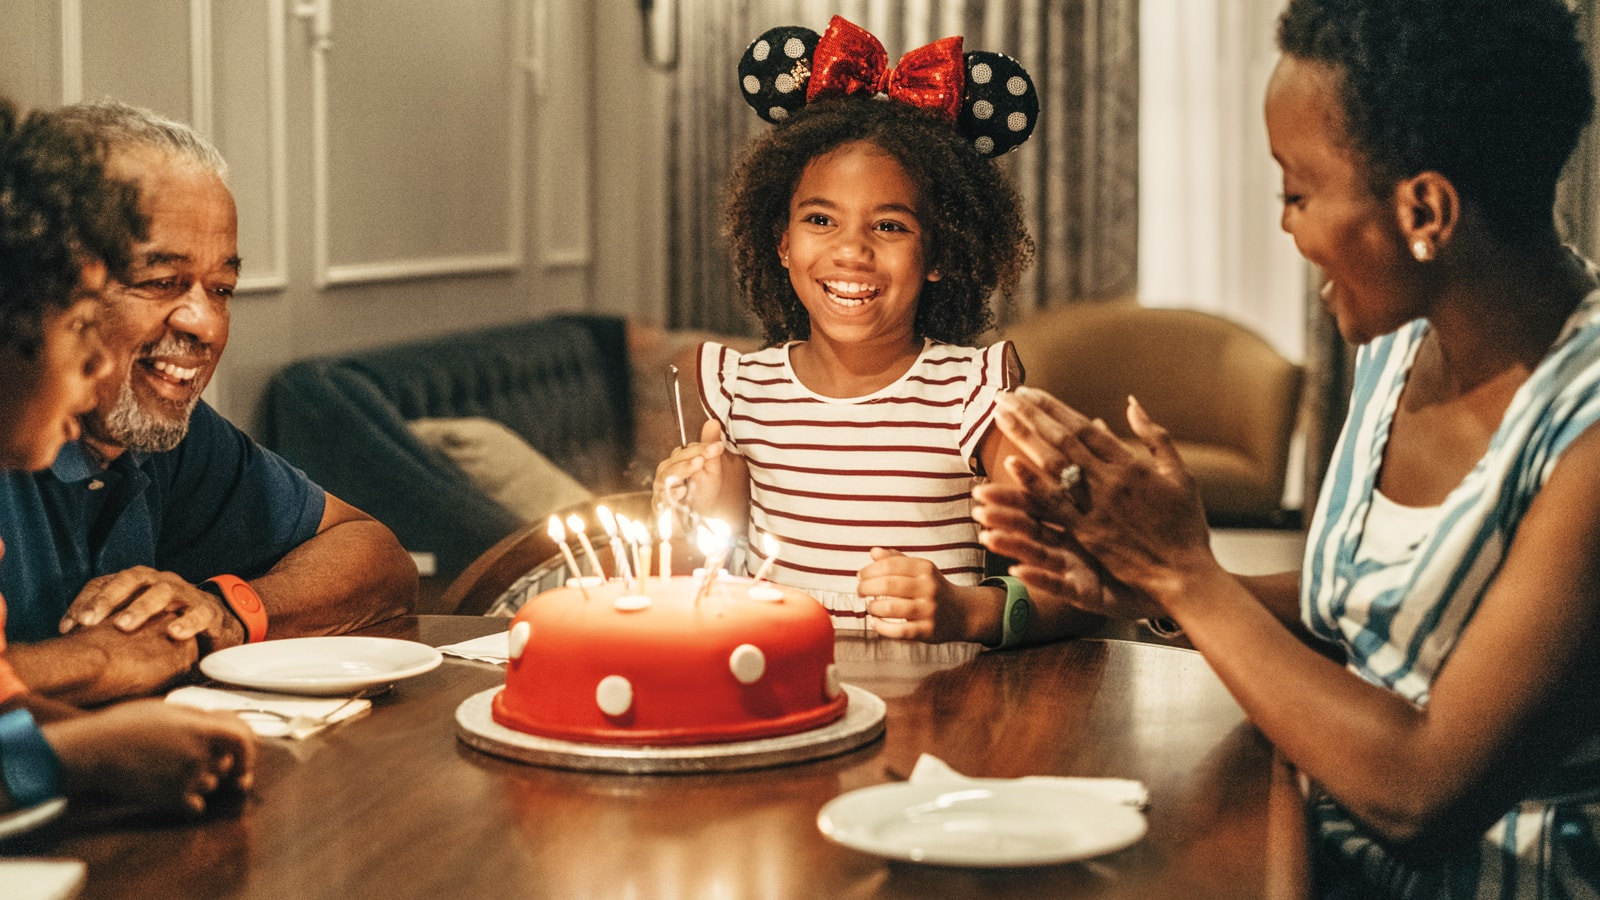 A family celebrates as a girl prepares to blow out candles on a Minnie Mouse themed cake